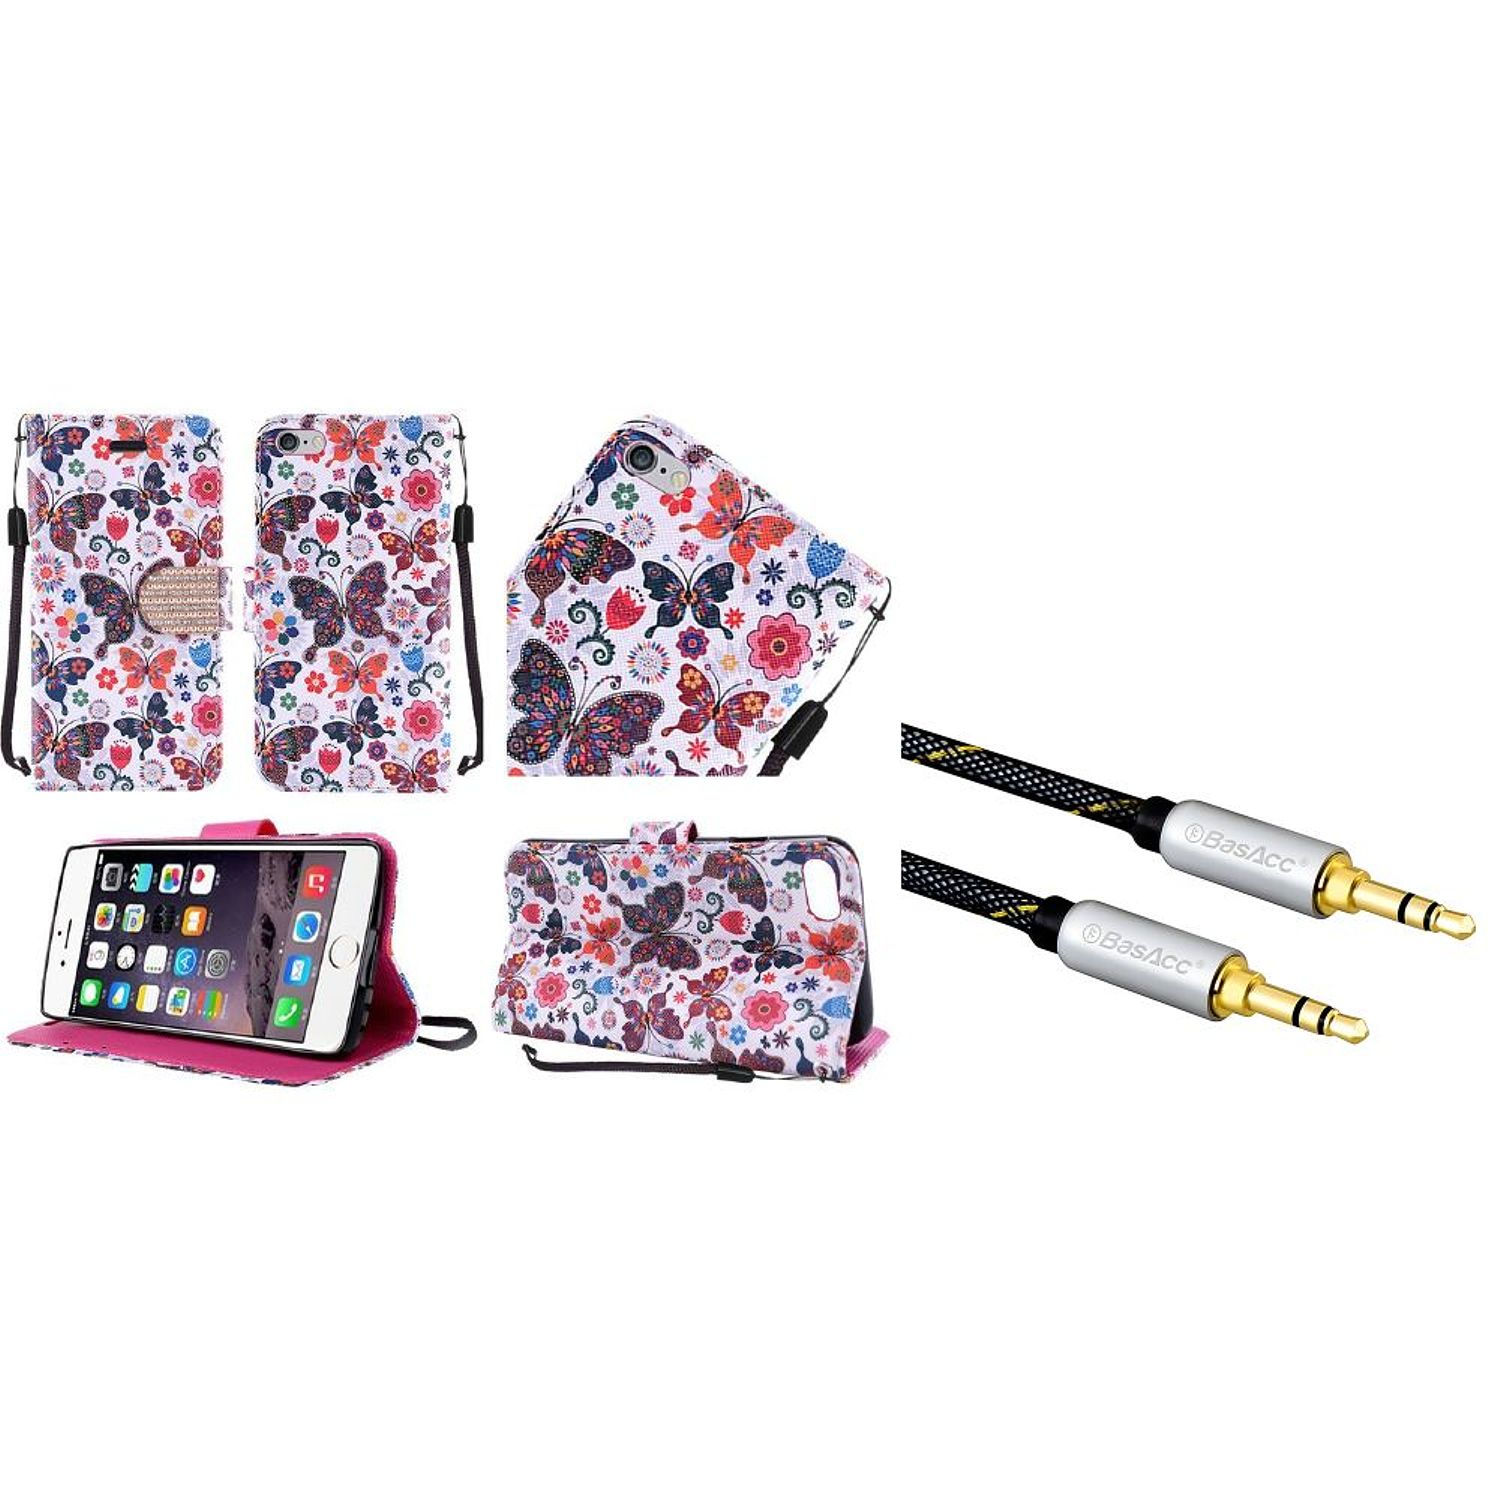 Insten Butterfly Leather Cover Stand Case with Lanyard For iPhone 6s Plus / 6 Plus (+ 3.5mm Audio Cable M/M)